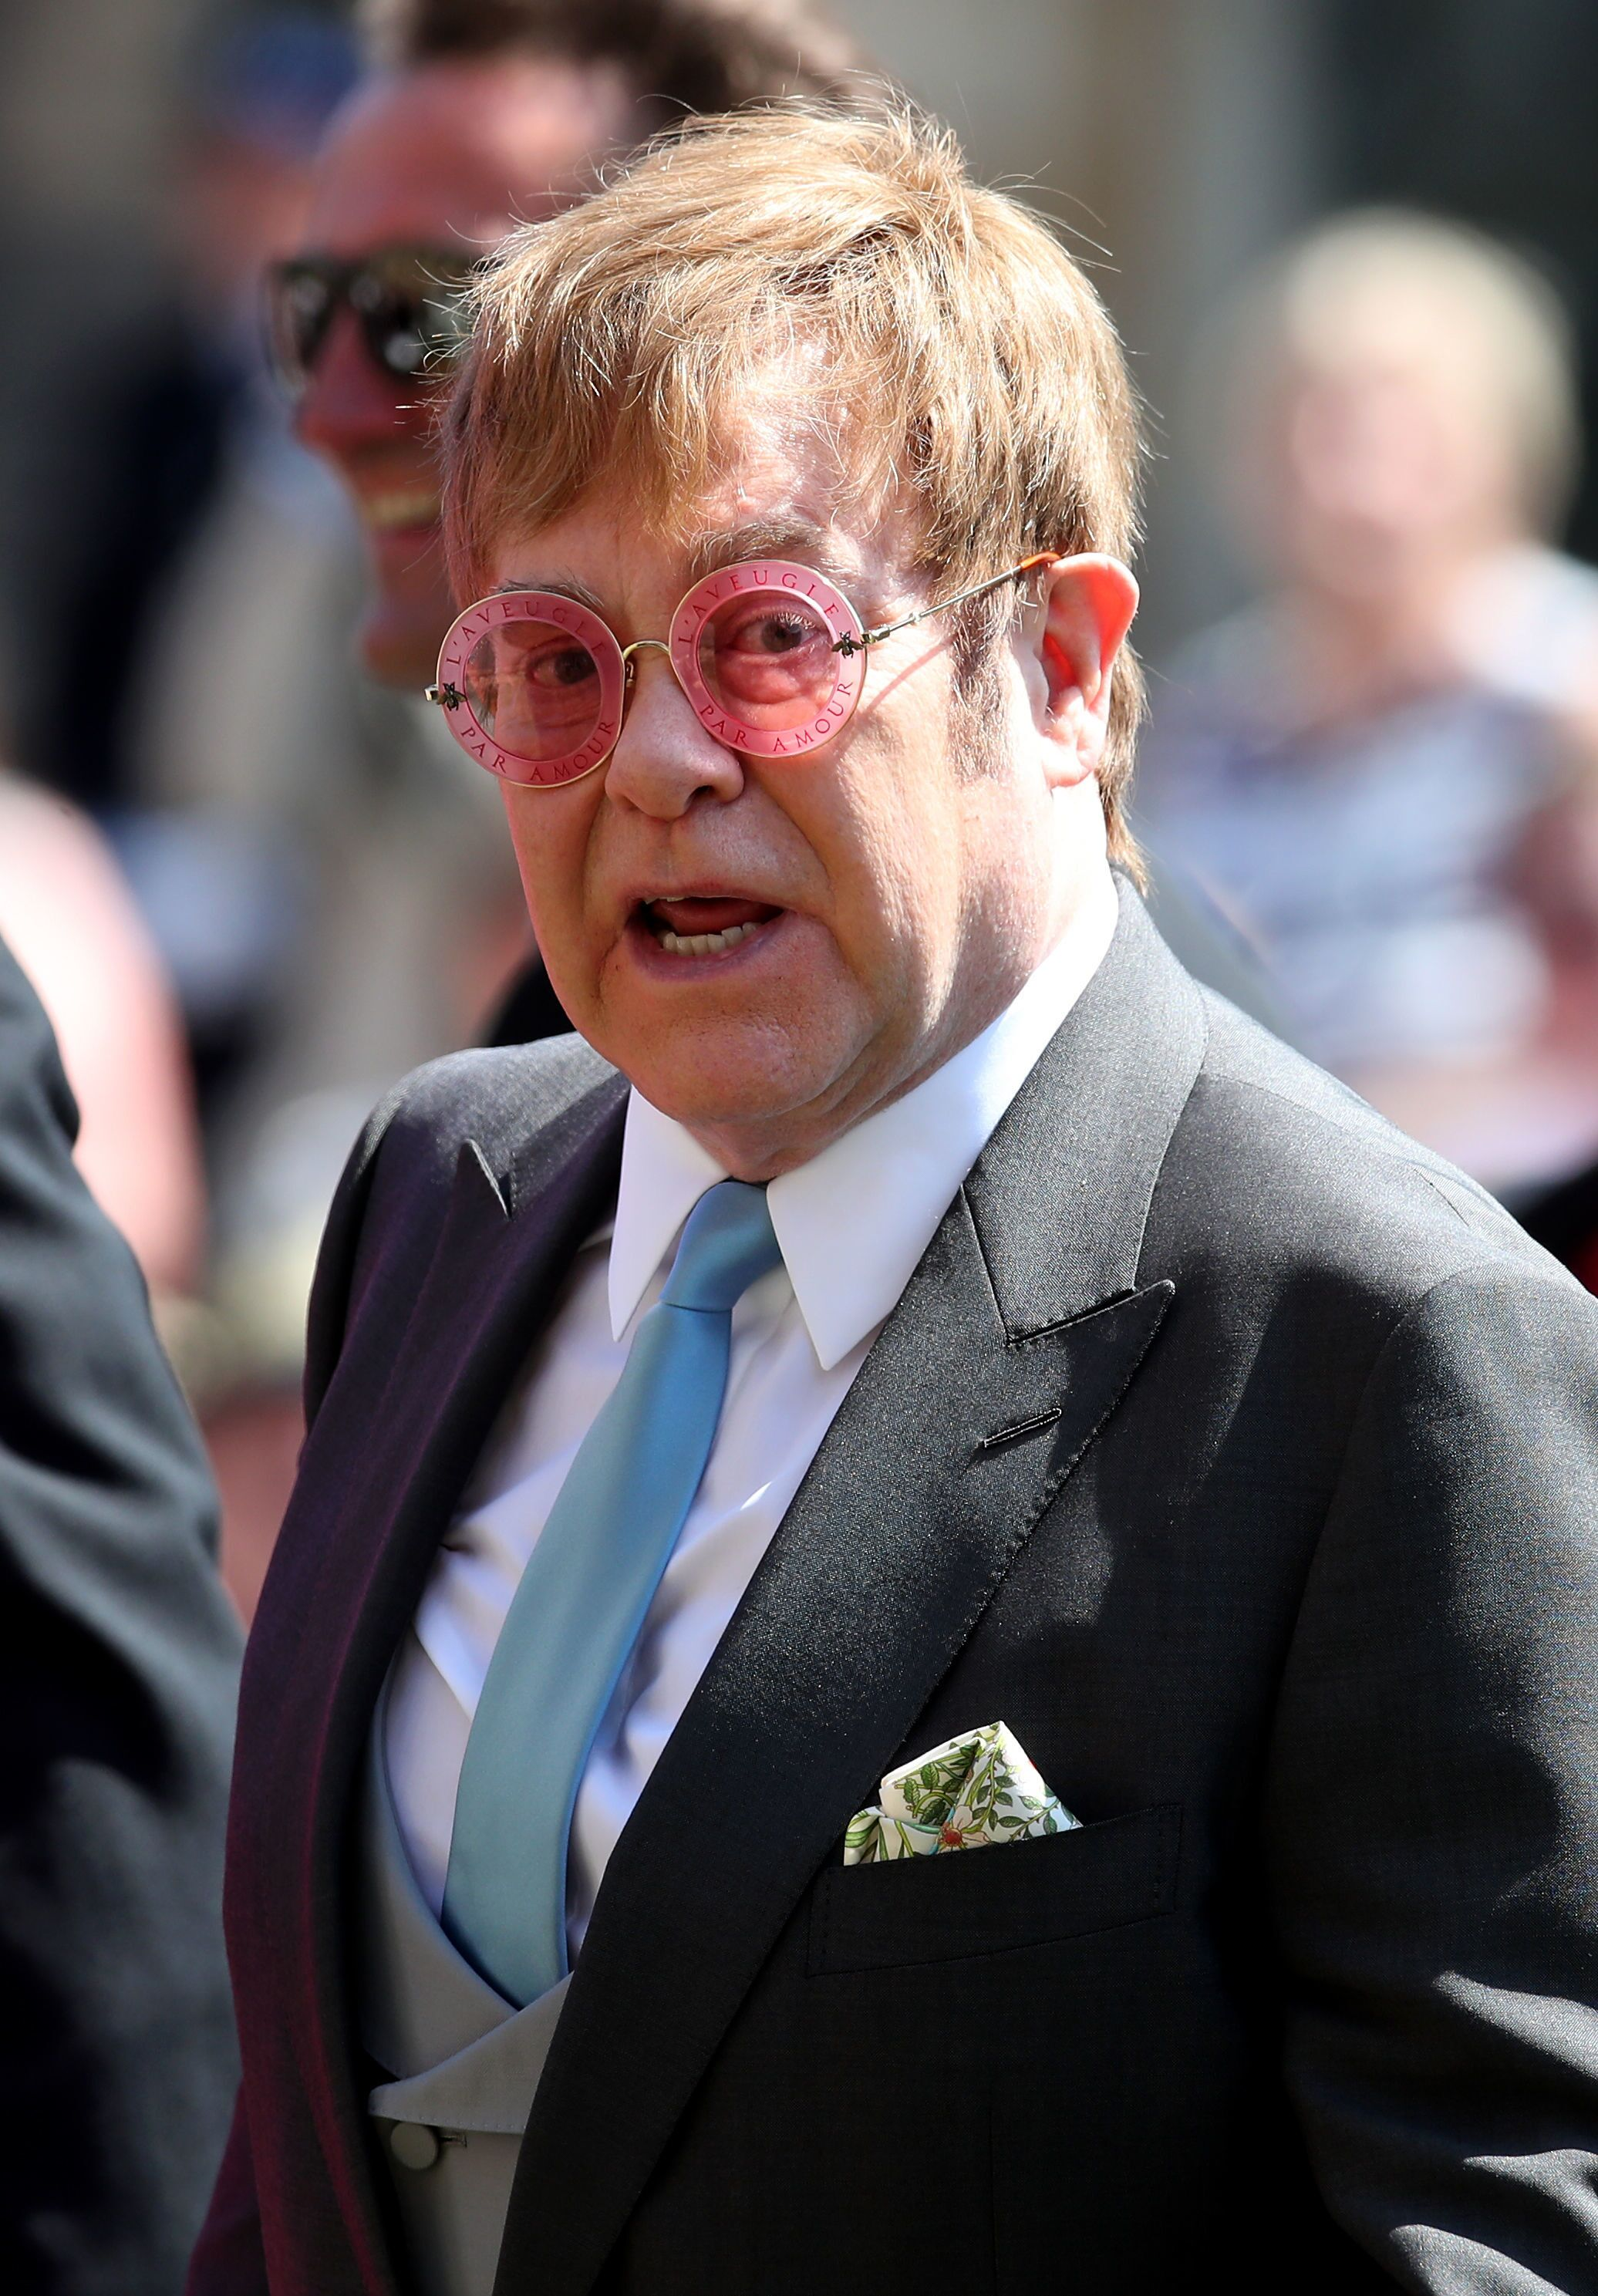 Elton John leaves St George's Chapel at Windsor Castle after the wedding of Prince Harry to Meghan Markle. | Source: Getty Images